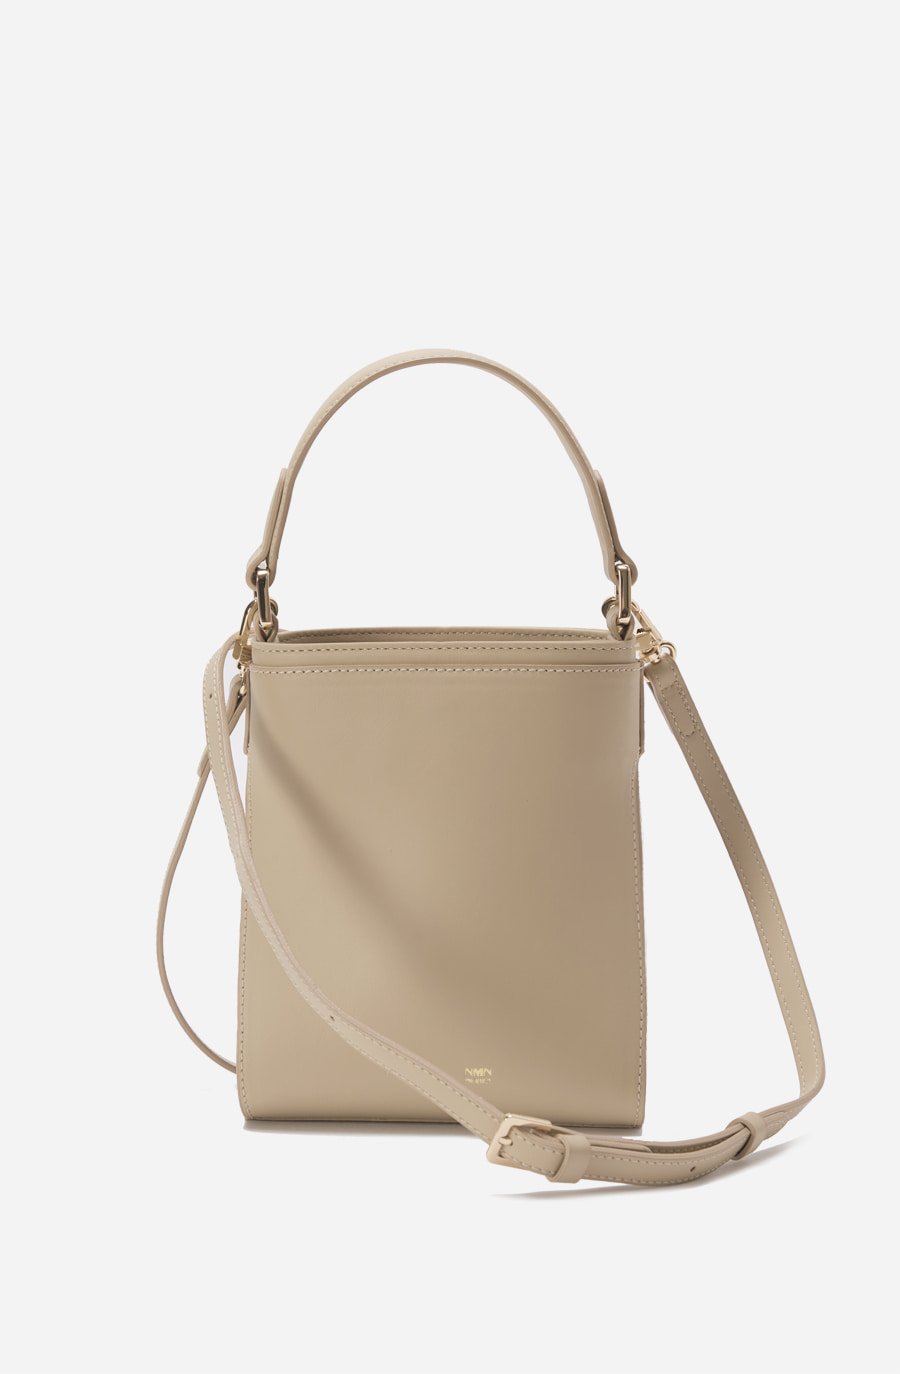 MINI LINK BAG (solid nude)